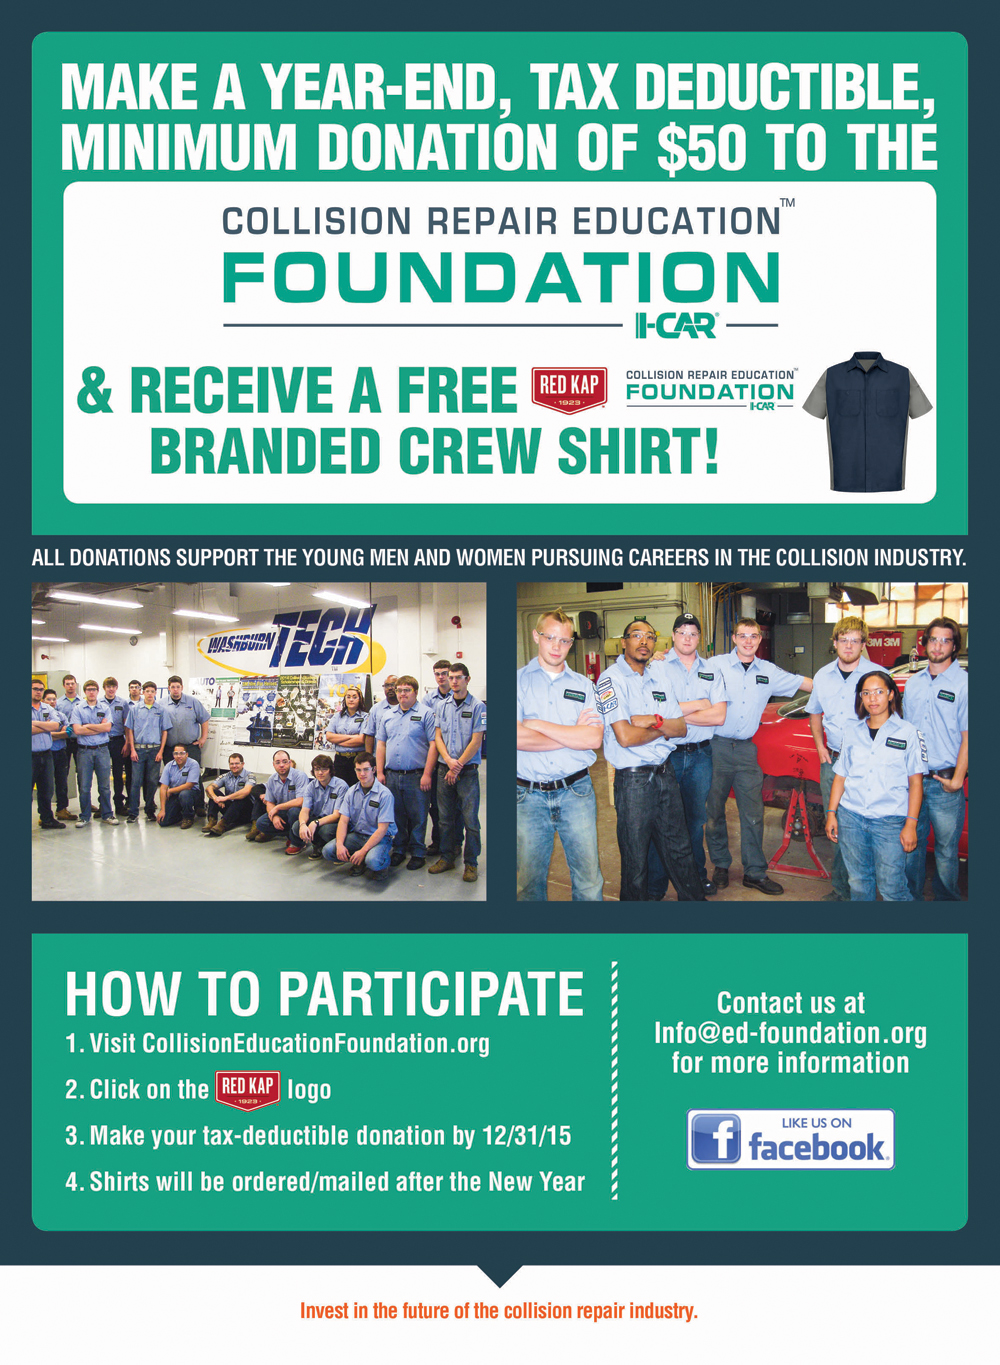 Collision Repair Education Foundation_Year End Support_RedKap Donation Program